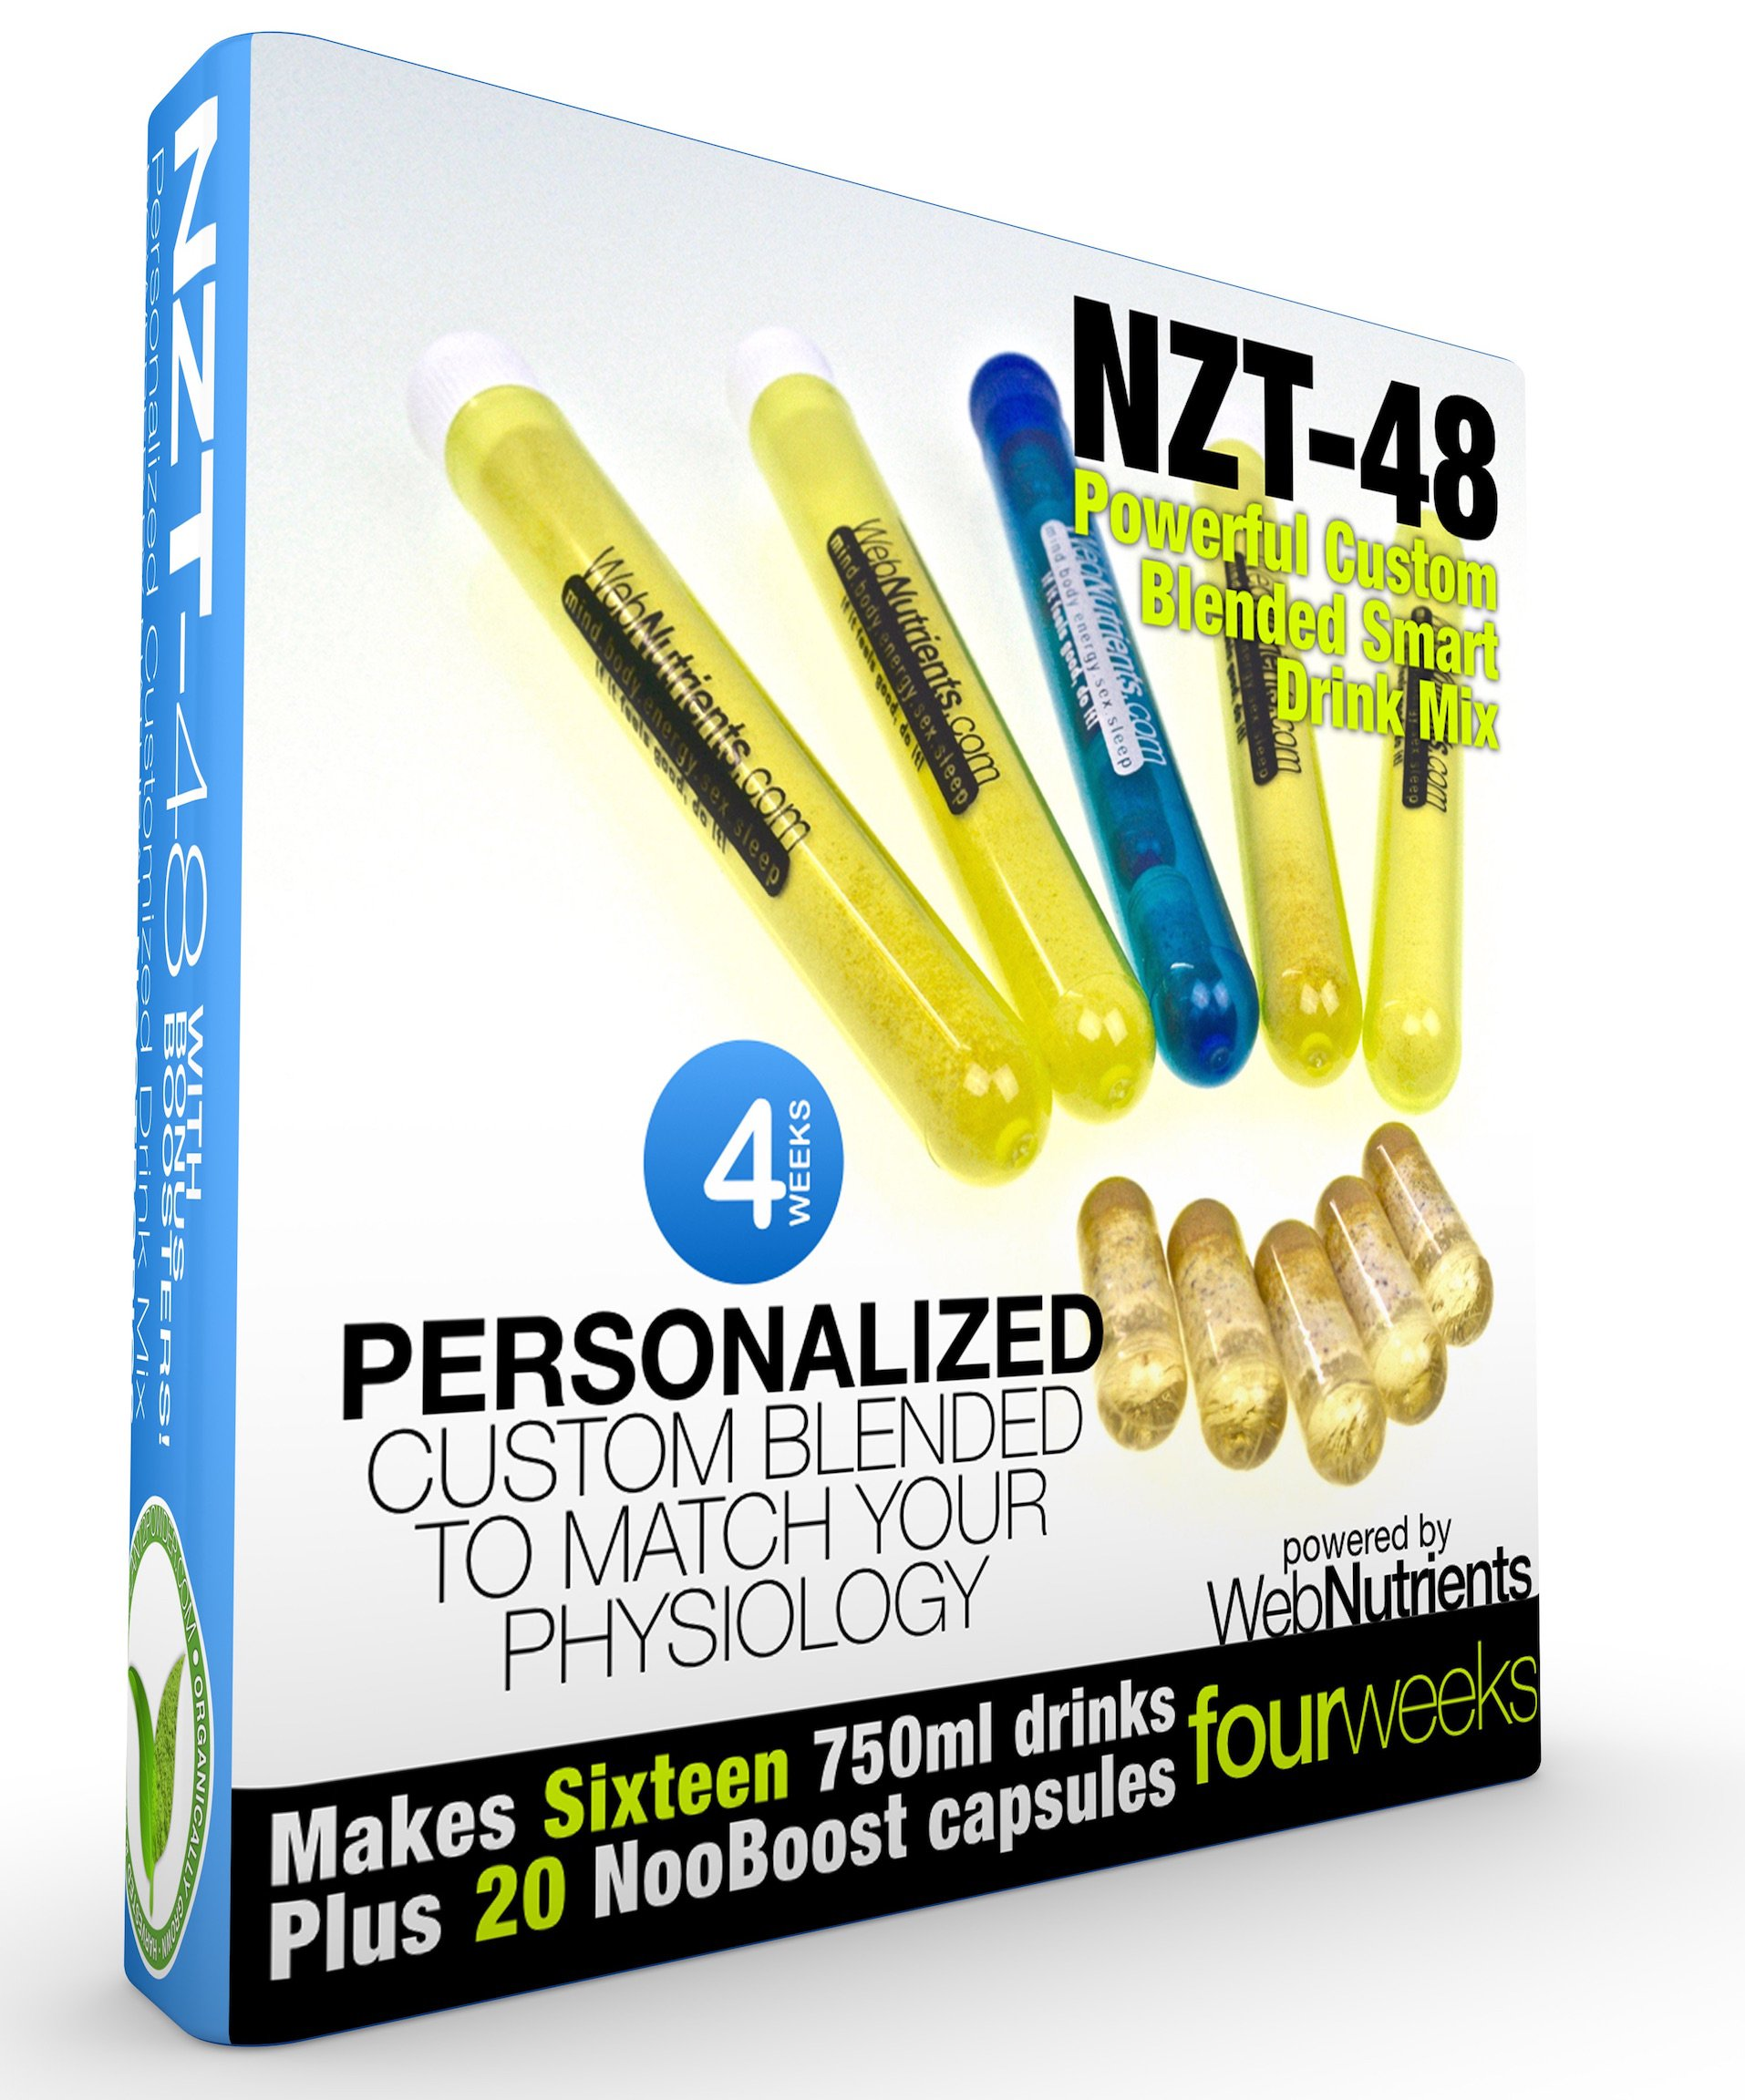 Limitless NZT-48 Customized and Personalized Nootropic Performance Drink Mix. Brain Booster with BHB, Celastrus Paniculatus Extract, CDP Choline, Uridine, Guarana. 28 Proven Ingredients (16+20)